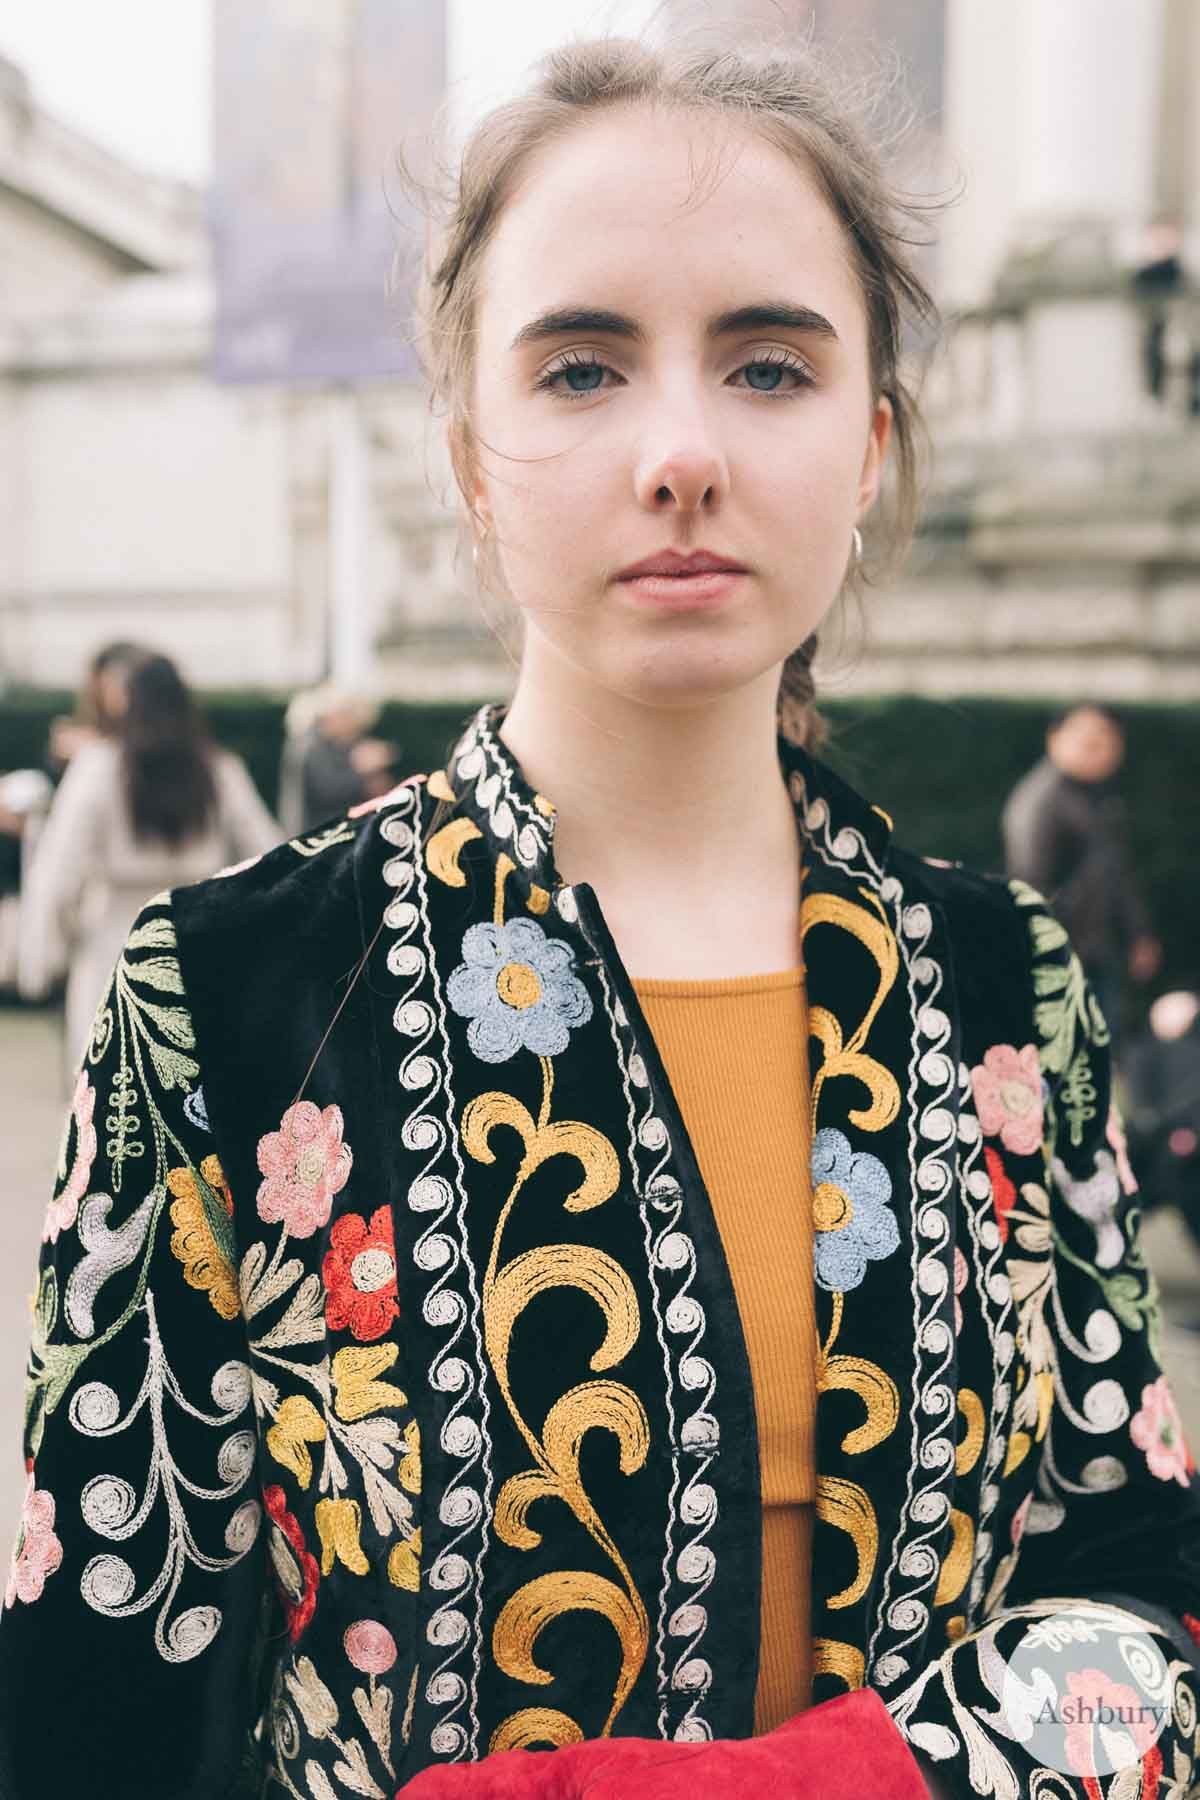 cicely creswell london street style 19